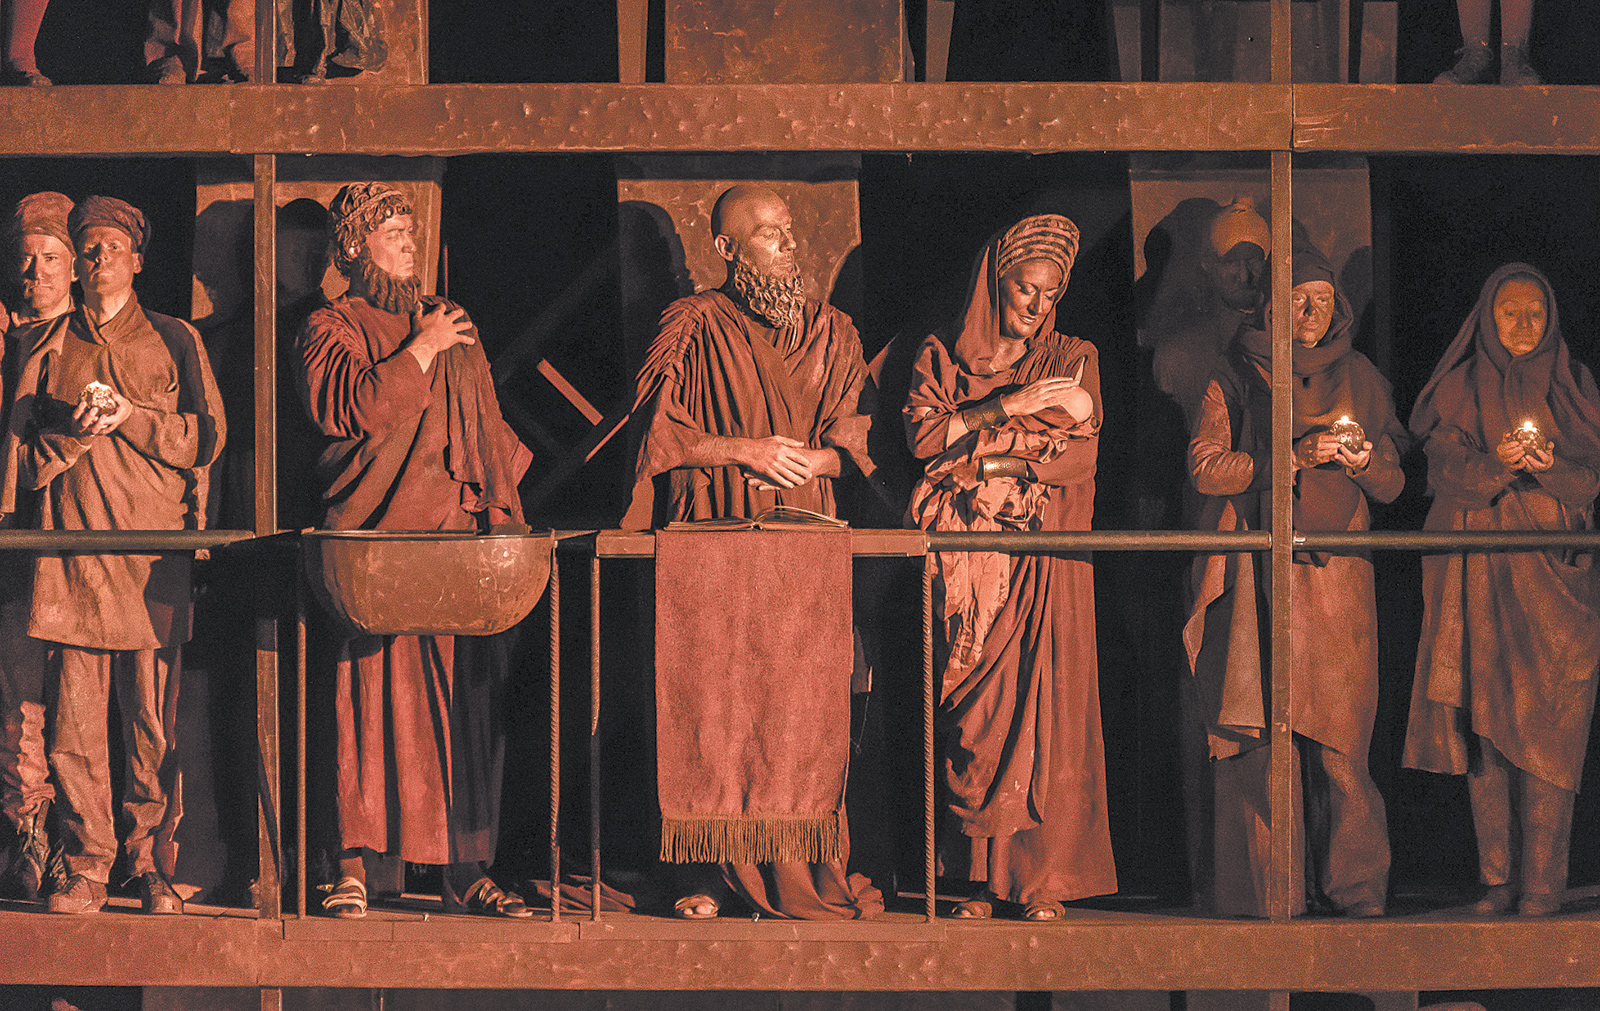 Hubert Francis as Laïos, Nicolas Courjal as the Theban High Priest, and Sarah Connolly as Jocaste in George Enescu's Oedipe, at the Royal Opera House, London